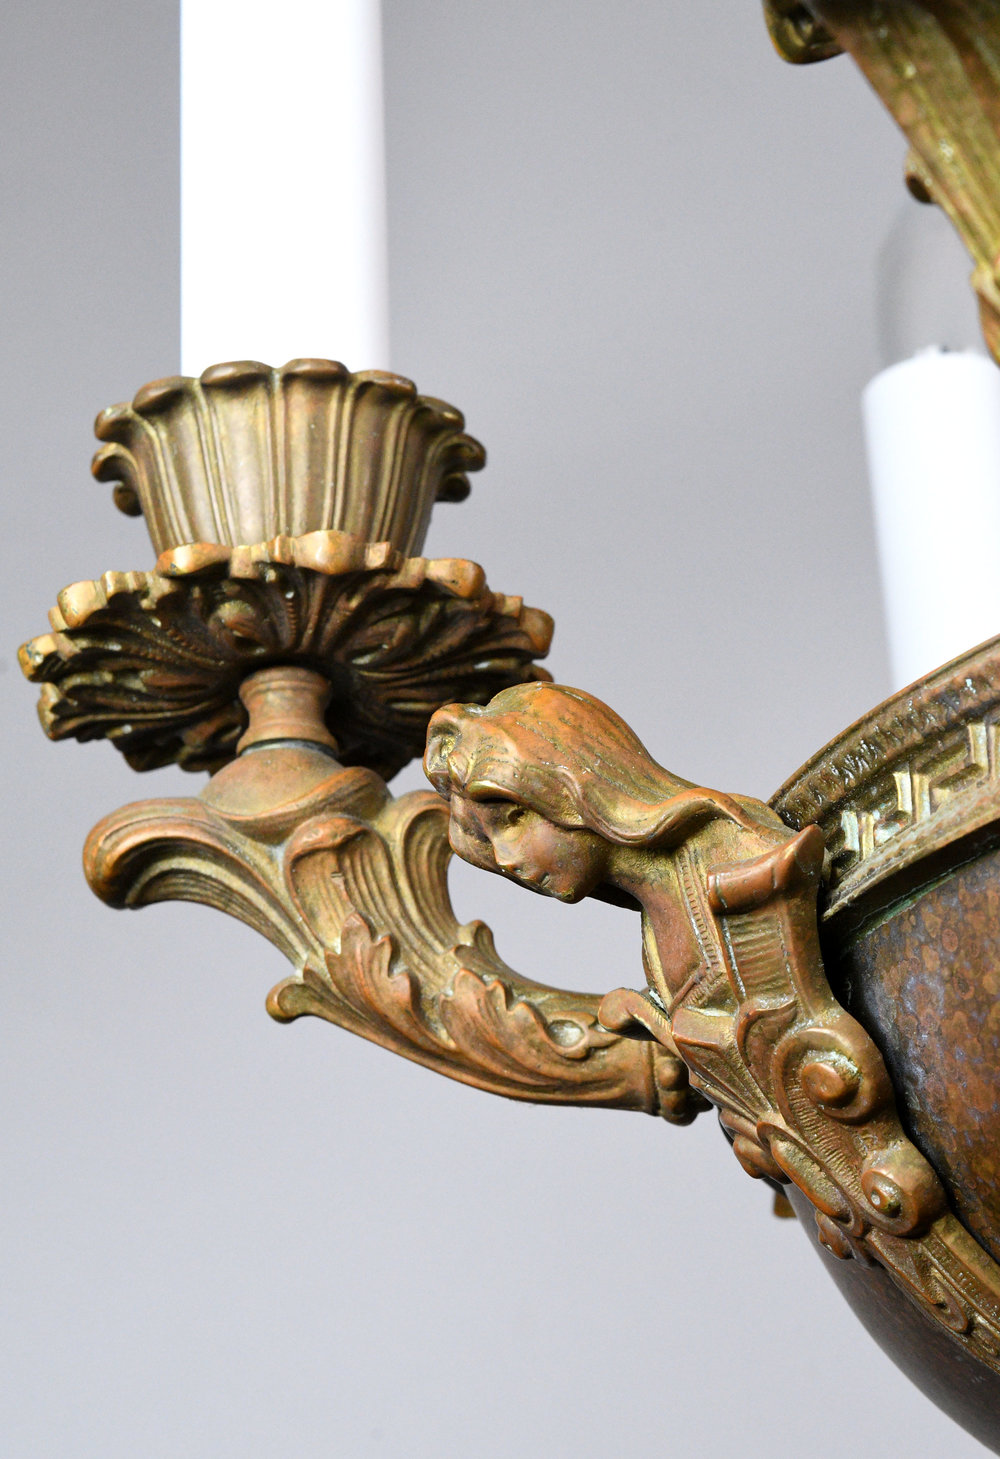 47592-figural-bronze-6-candle-chandelier-woman-profile.jpg